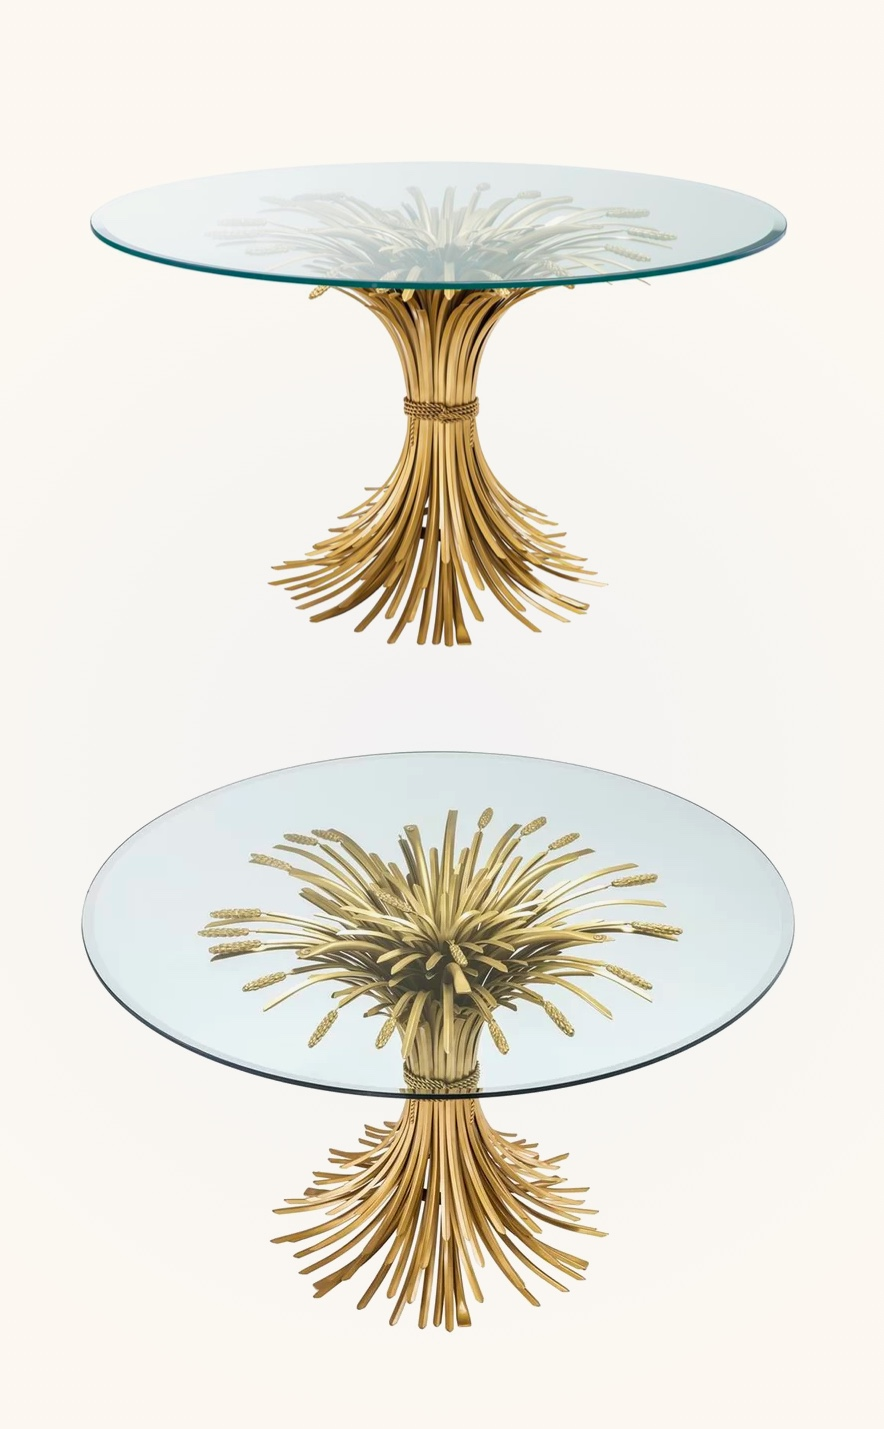 Sheaf-Wheat-Dining-Table-Glass-Top-With-Gold-Scultural-Base-Art-Furniture